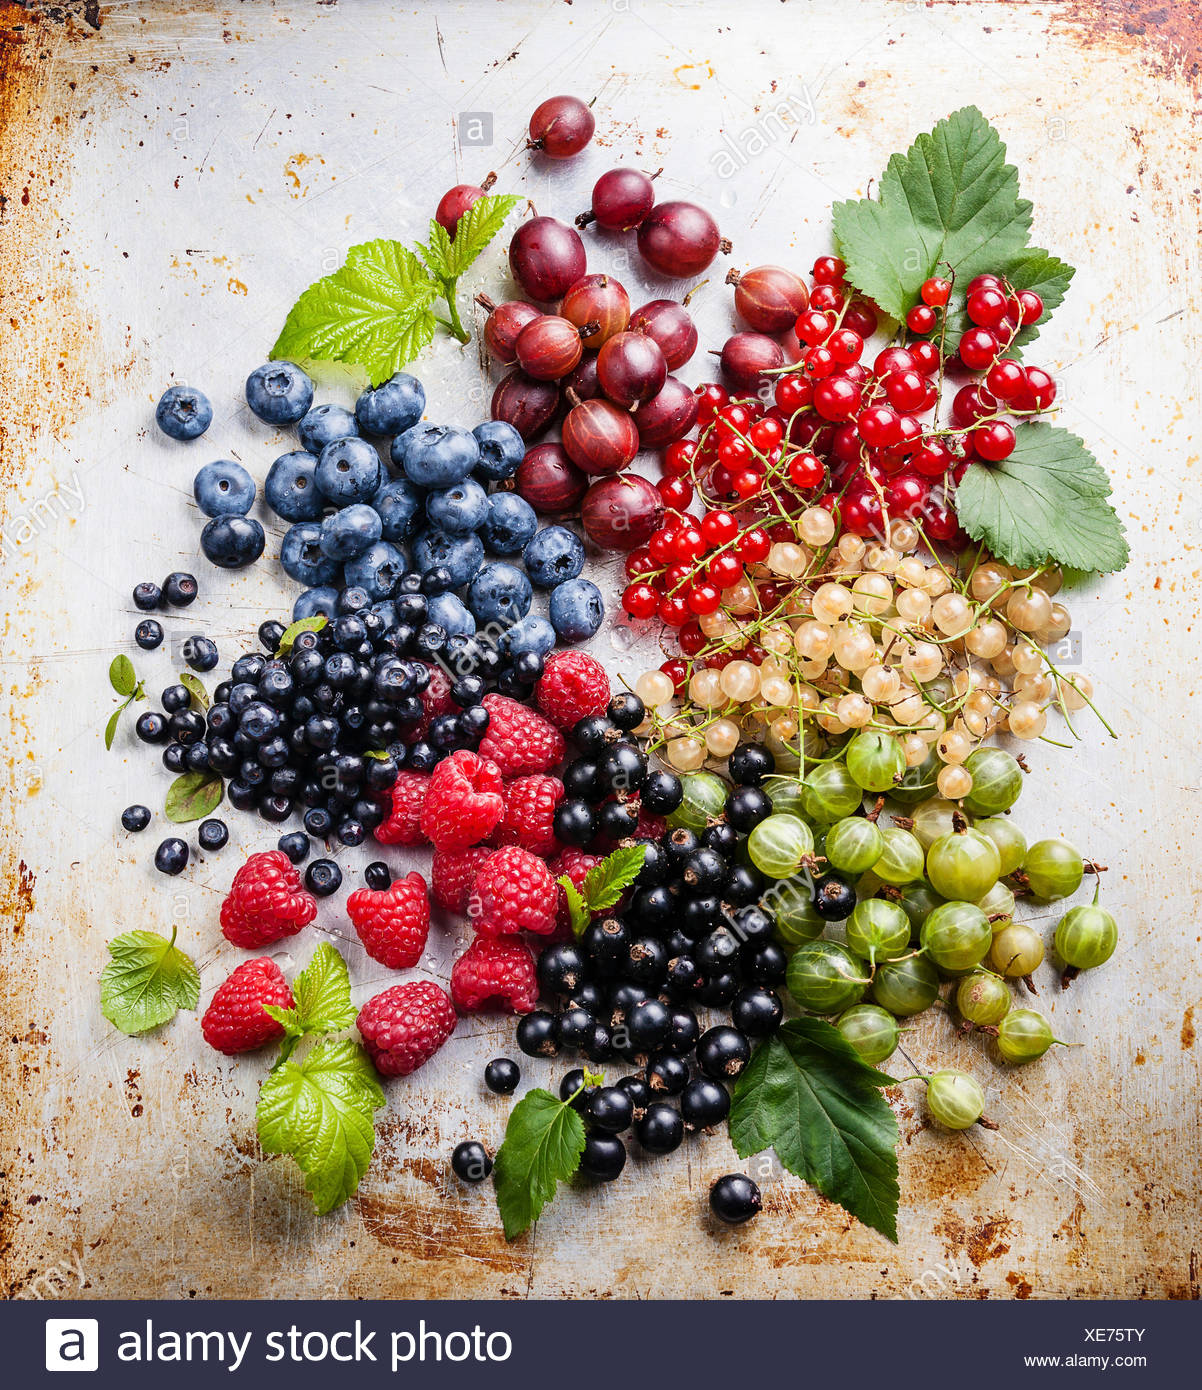 Mix of fresh berries with leaves on textured metal background - Stock Image